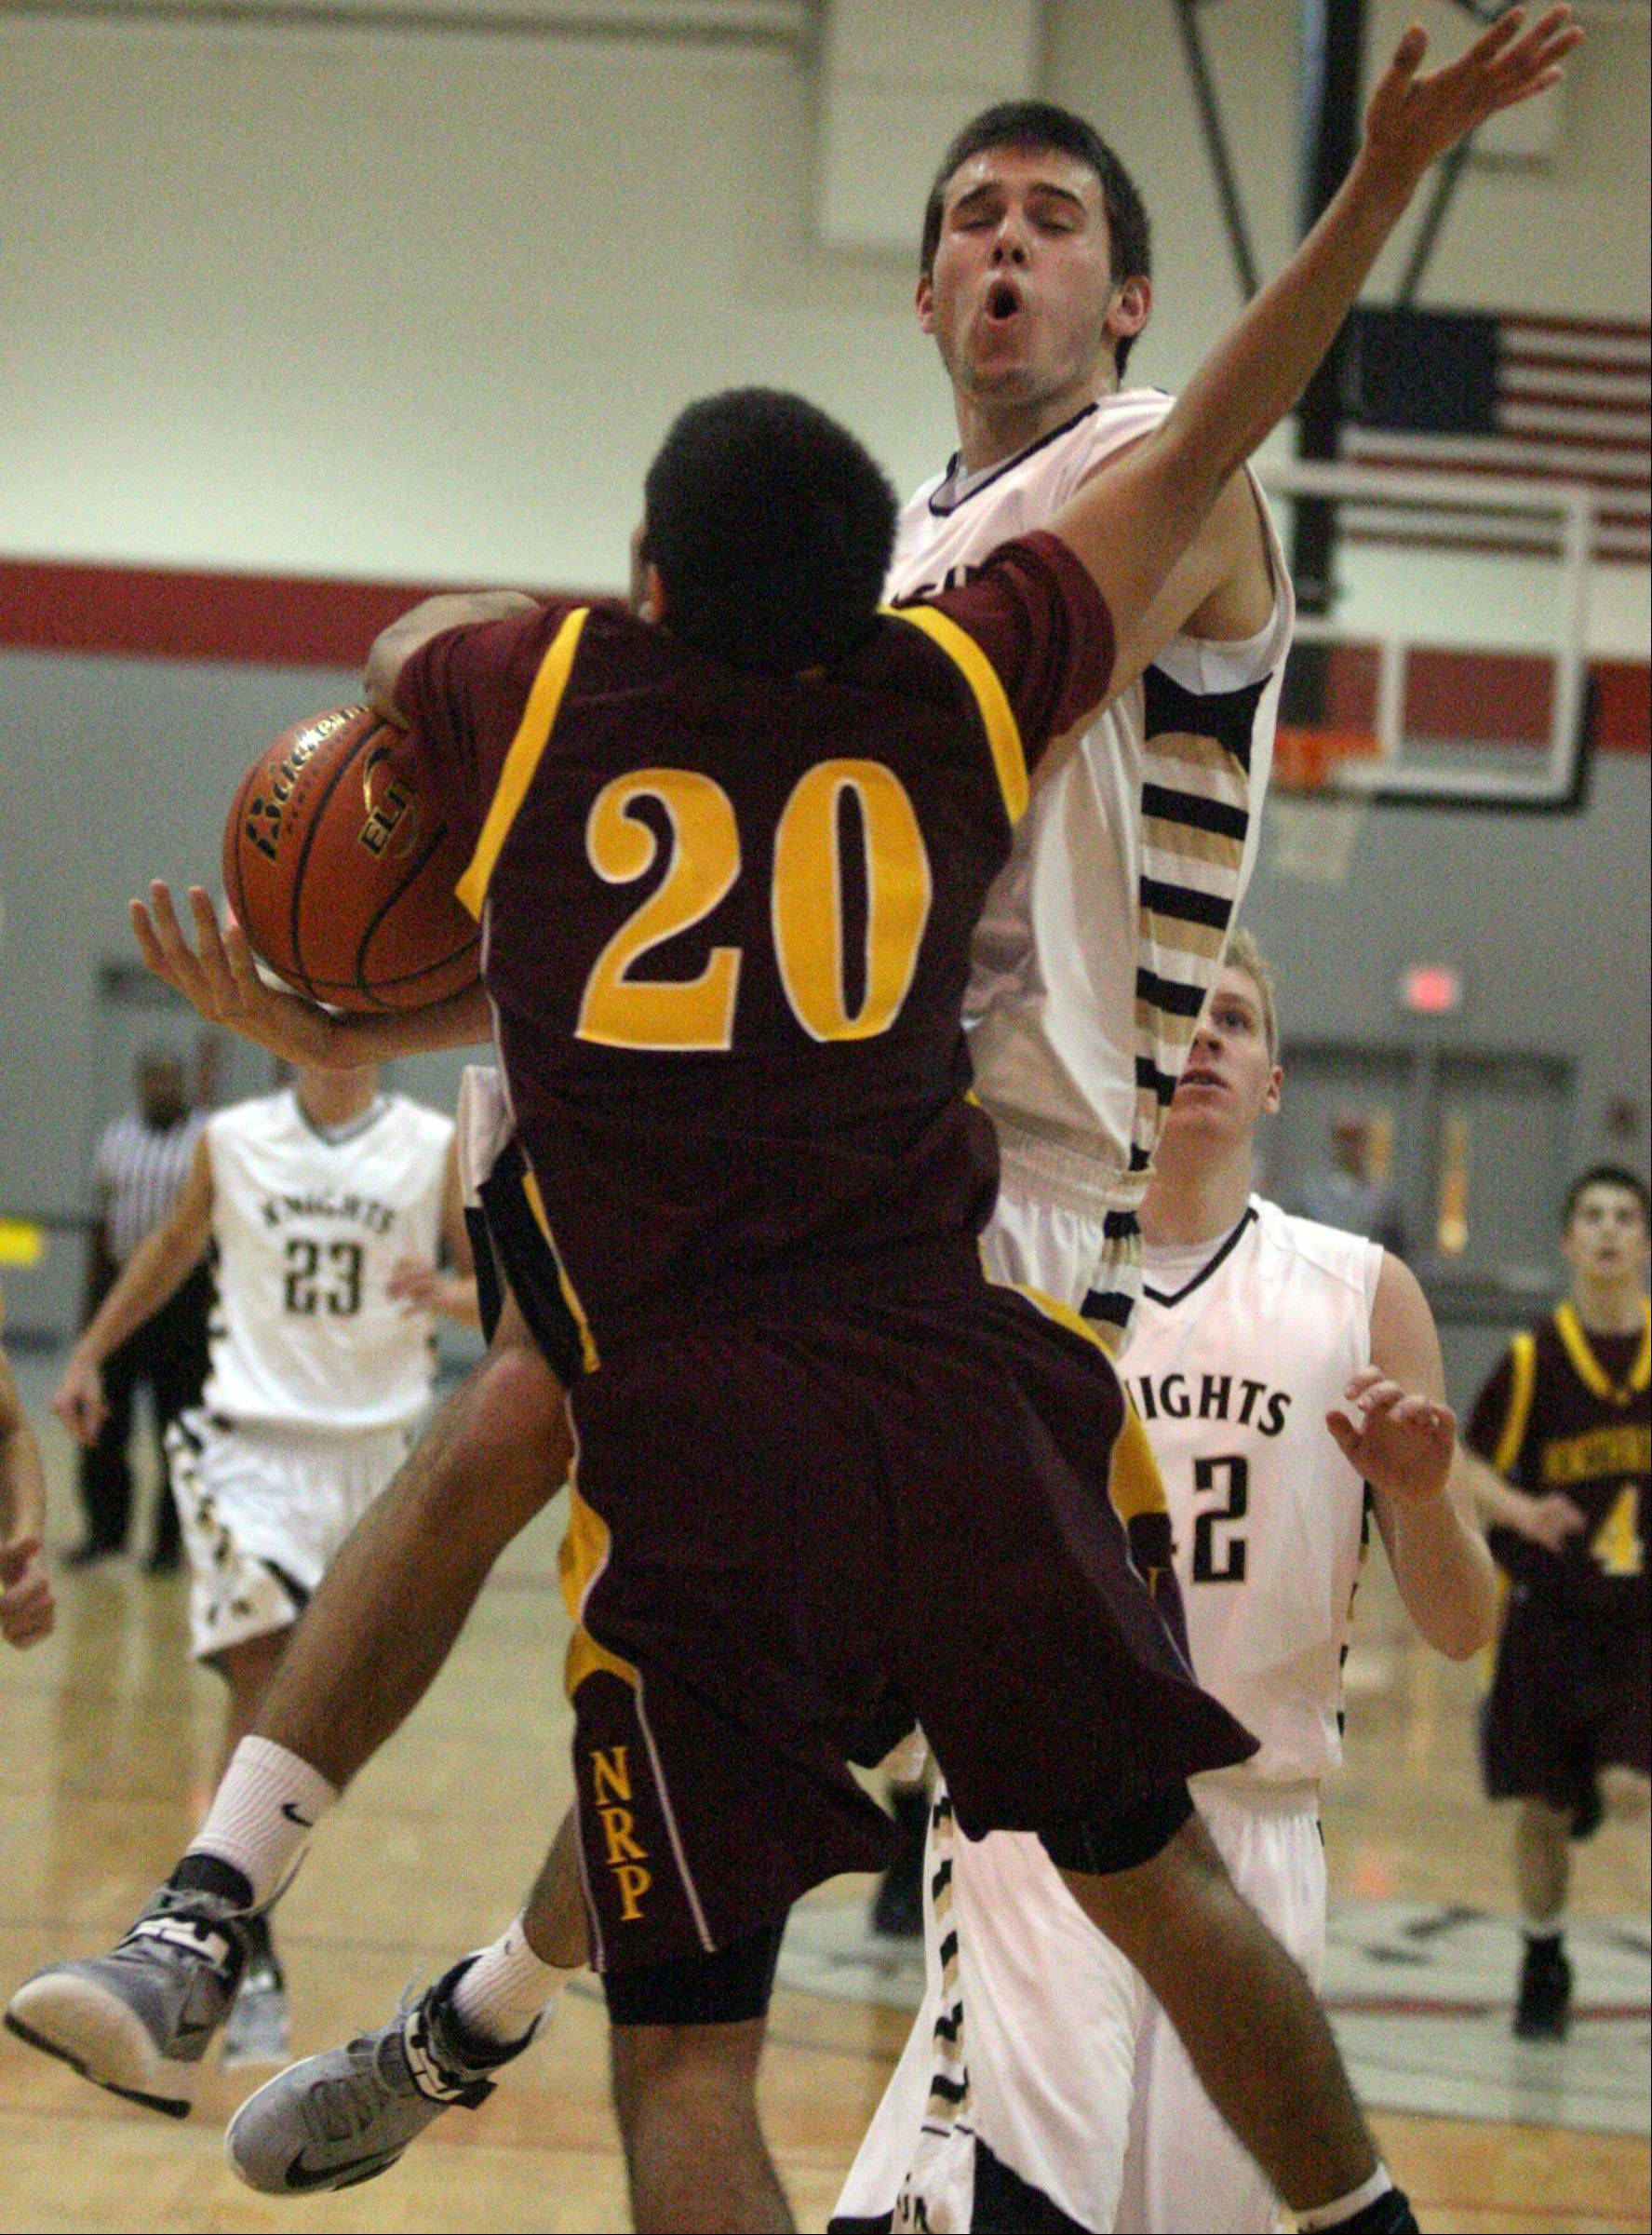 Images from the Northridge Prep vs. Grayslake North boys basketball game on Friday, Dec. 28 in Fox Lake.